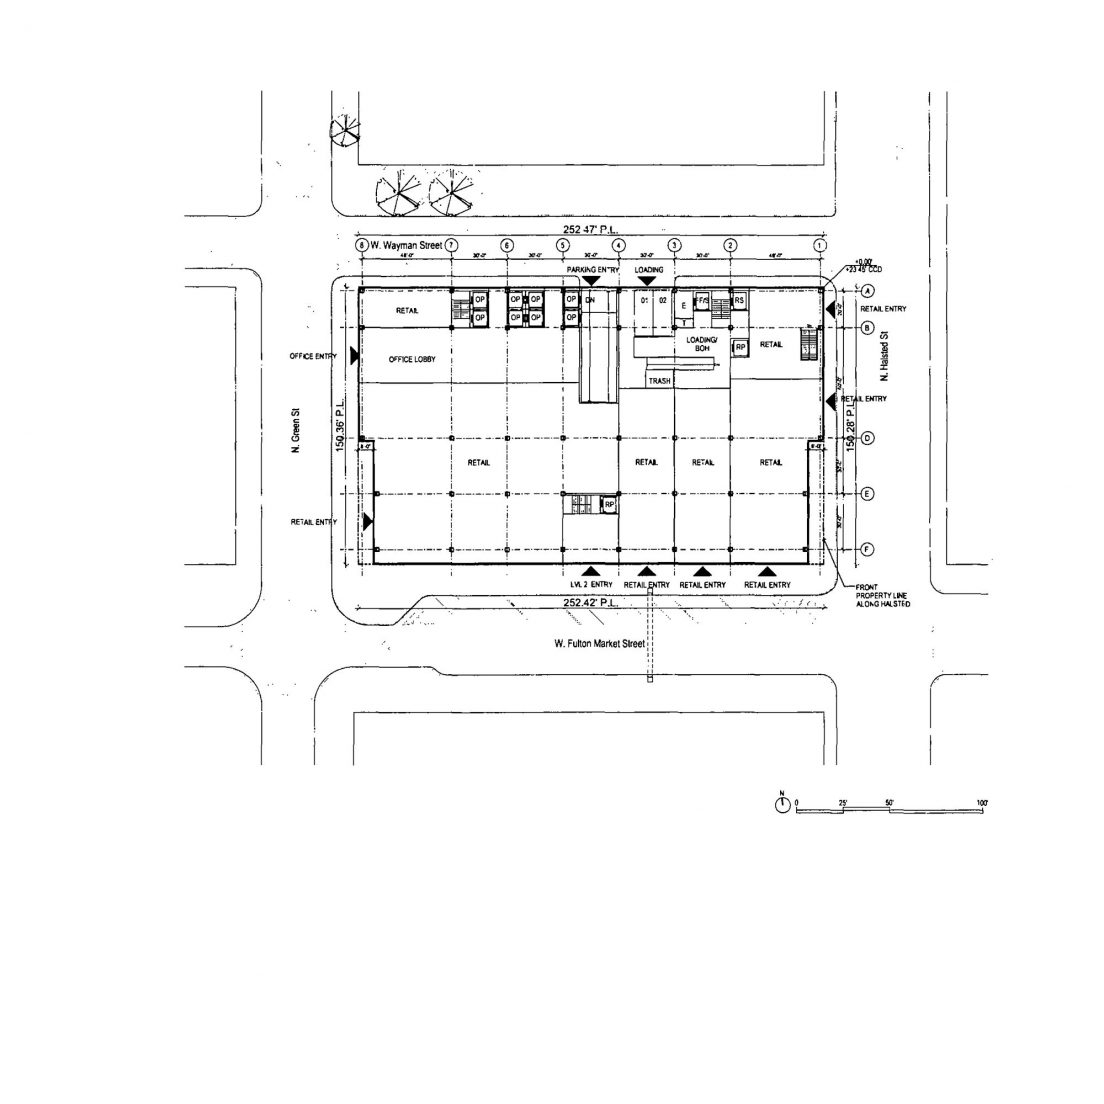 Diagram of 800 West Fulton Market